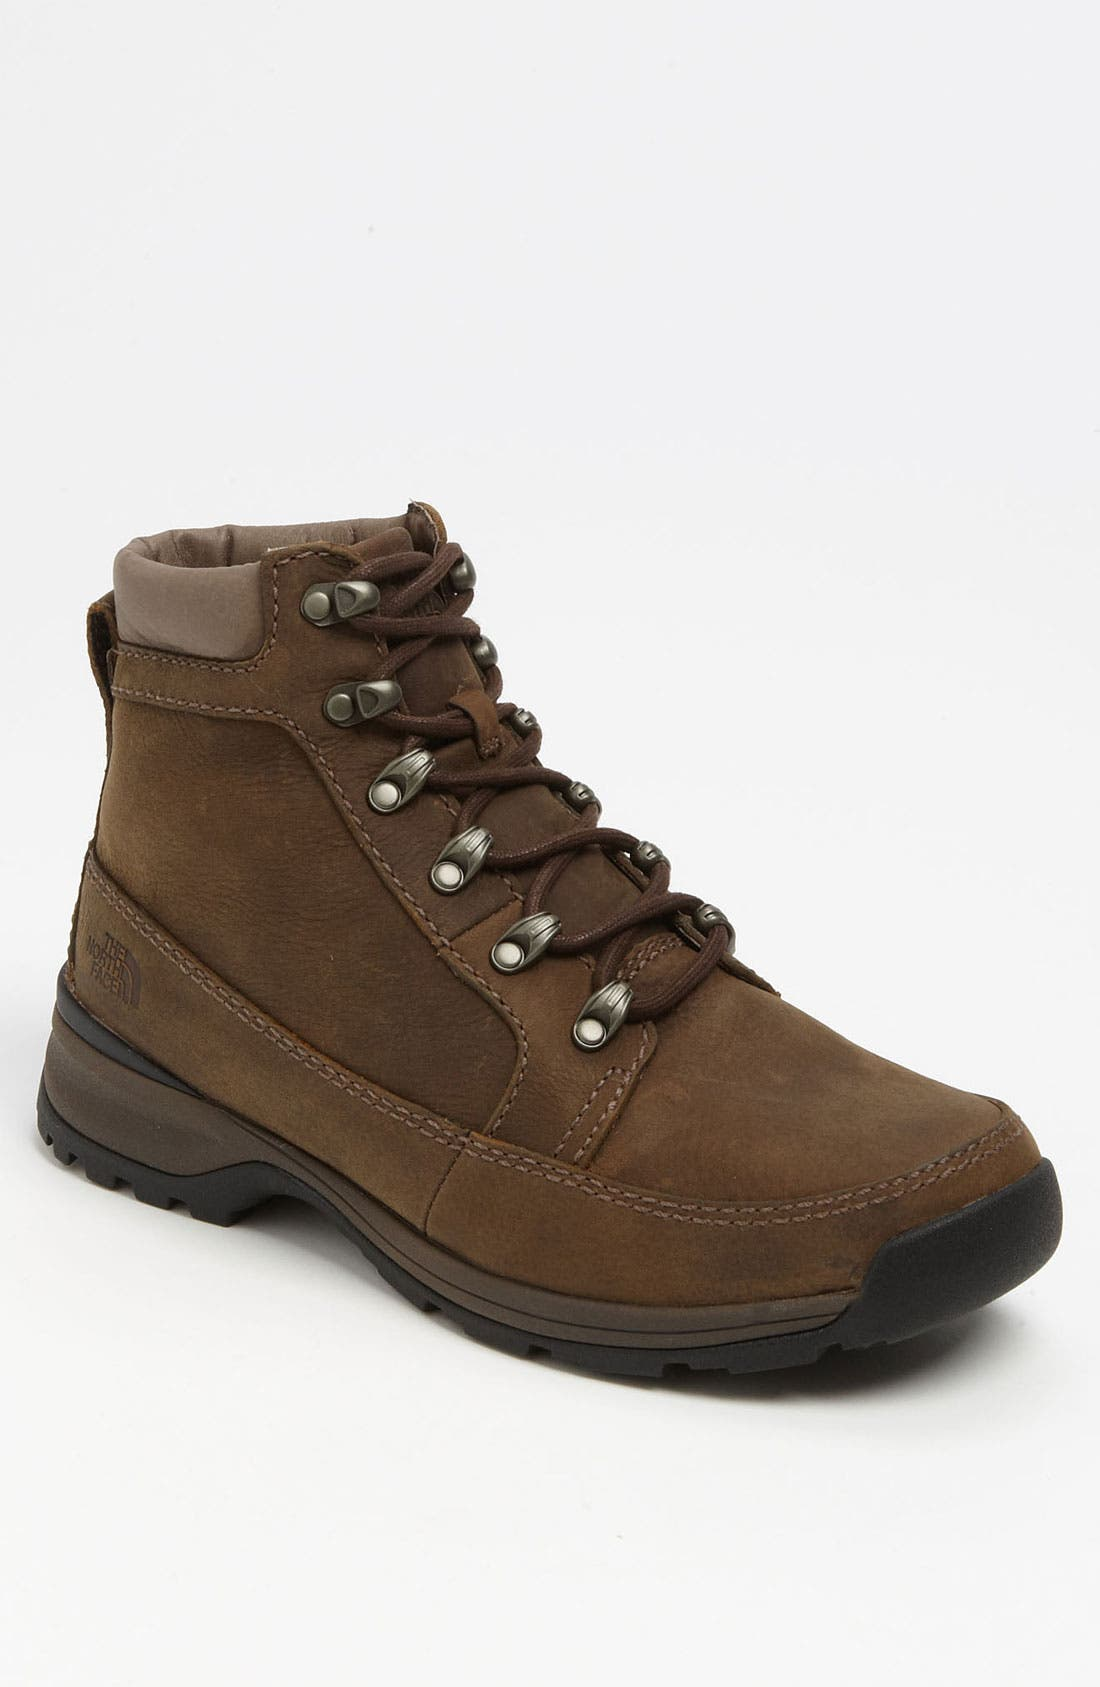 Alternate Image 1 Selected - The North Face 'Ketchum' Boot